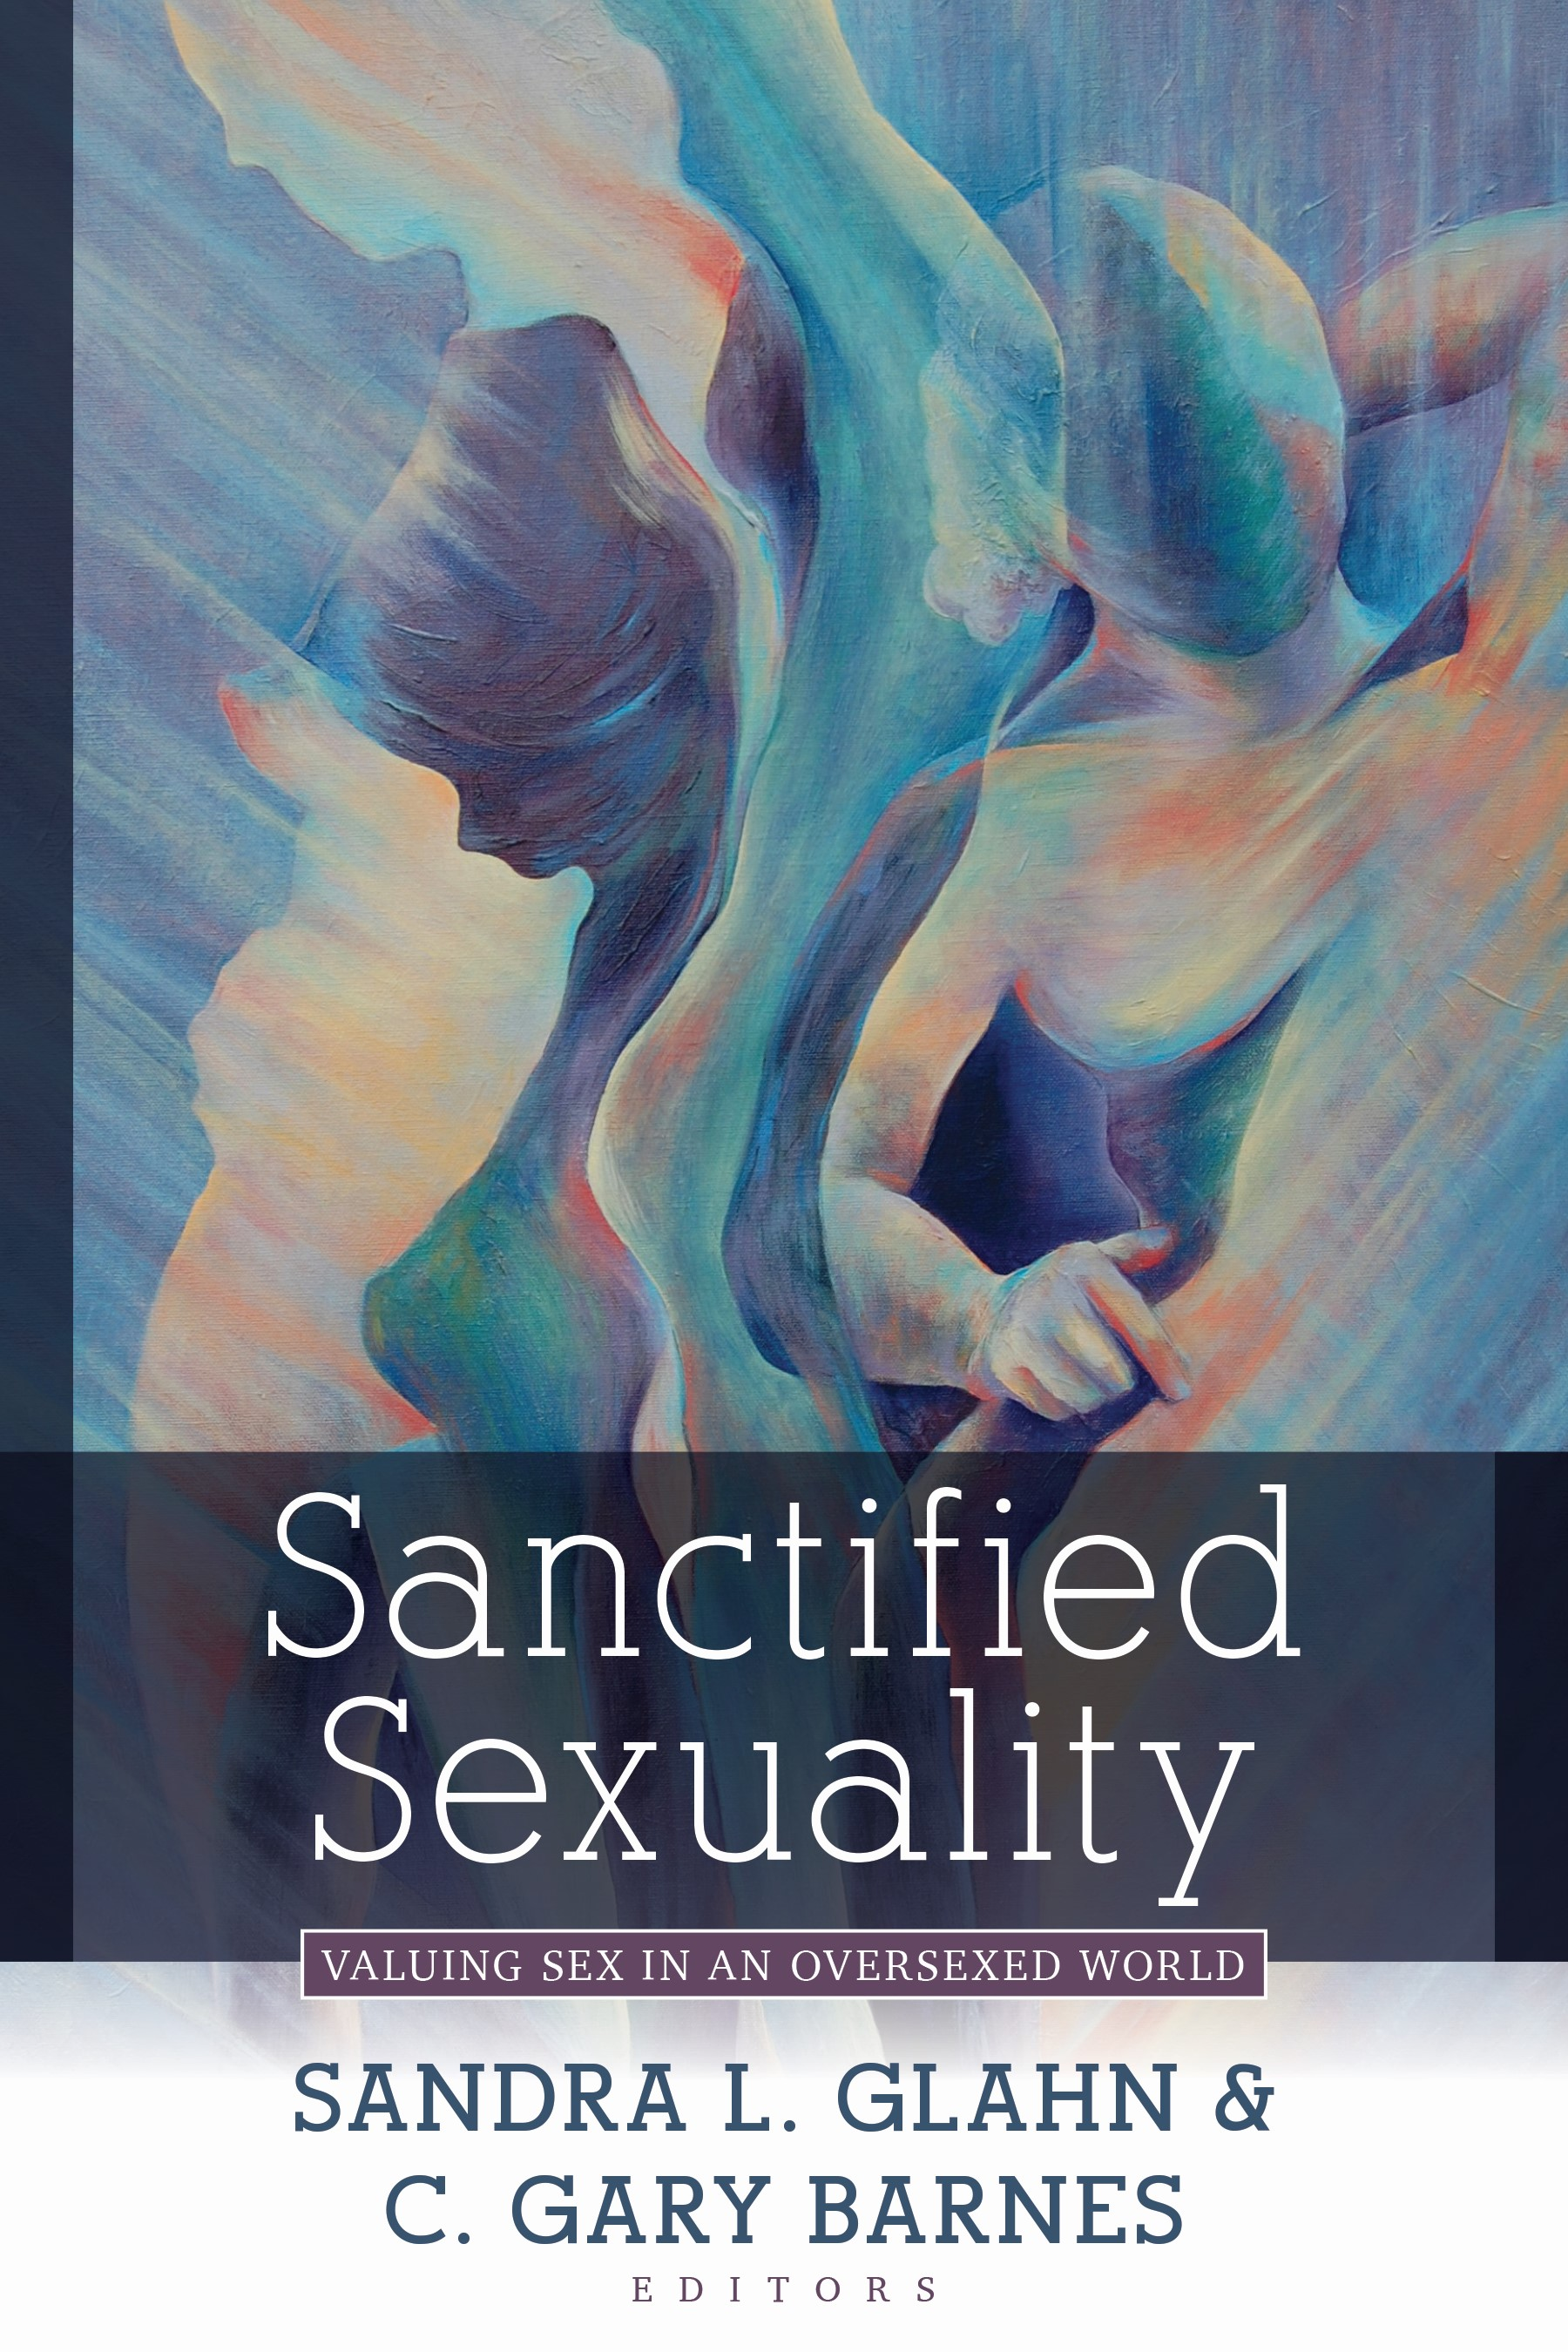 Sanctified Sexuality